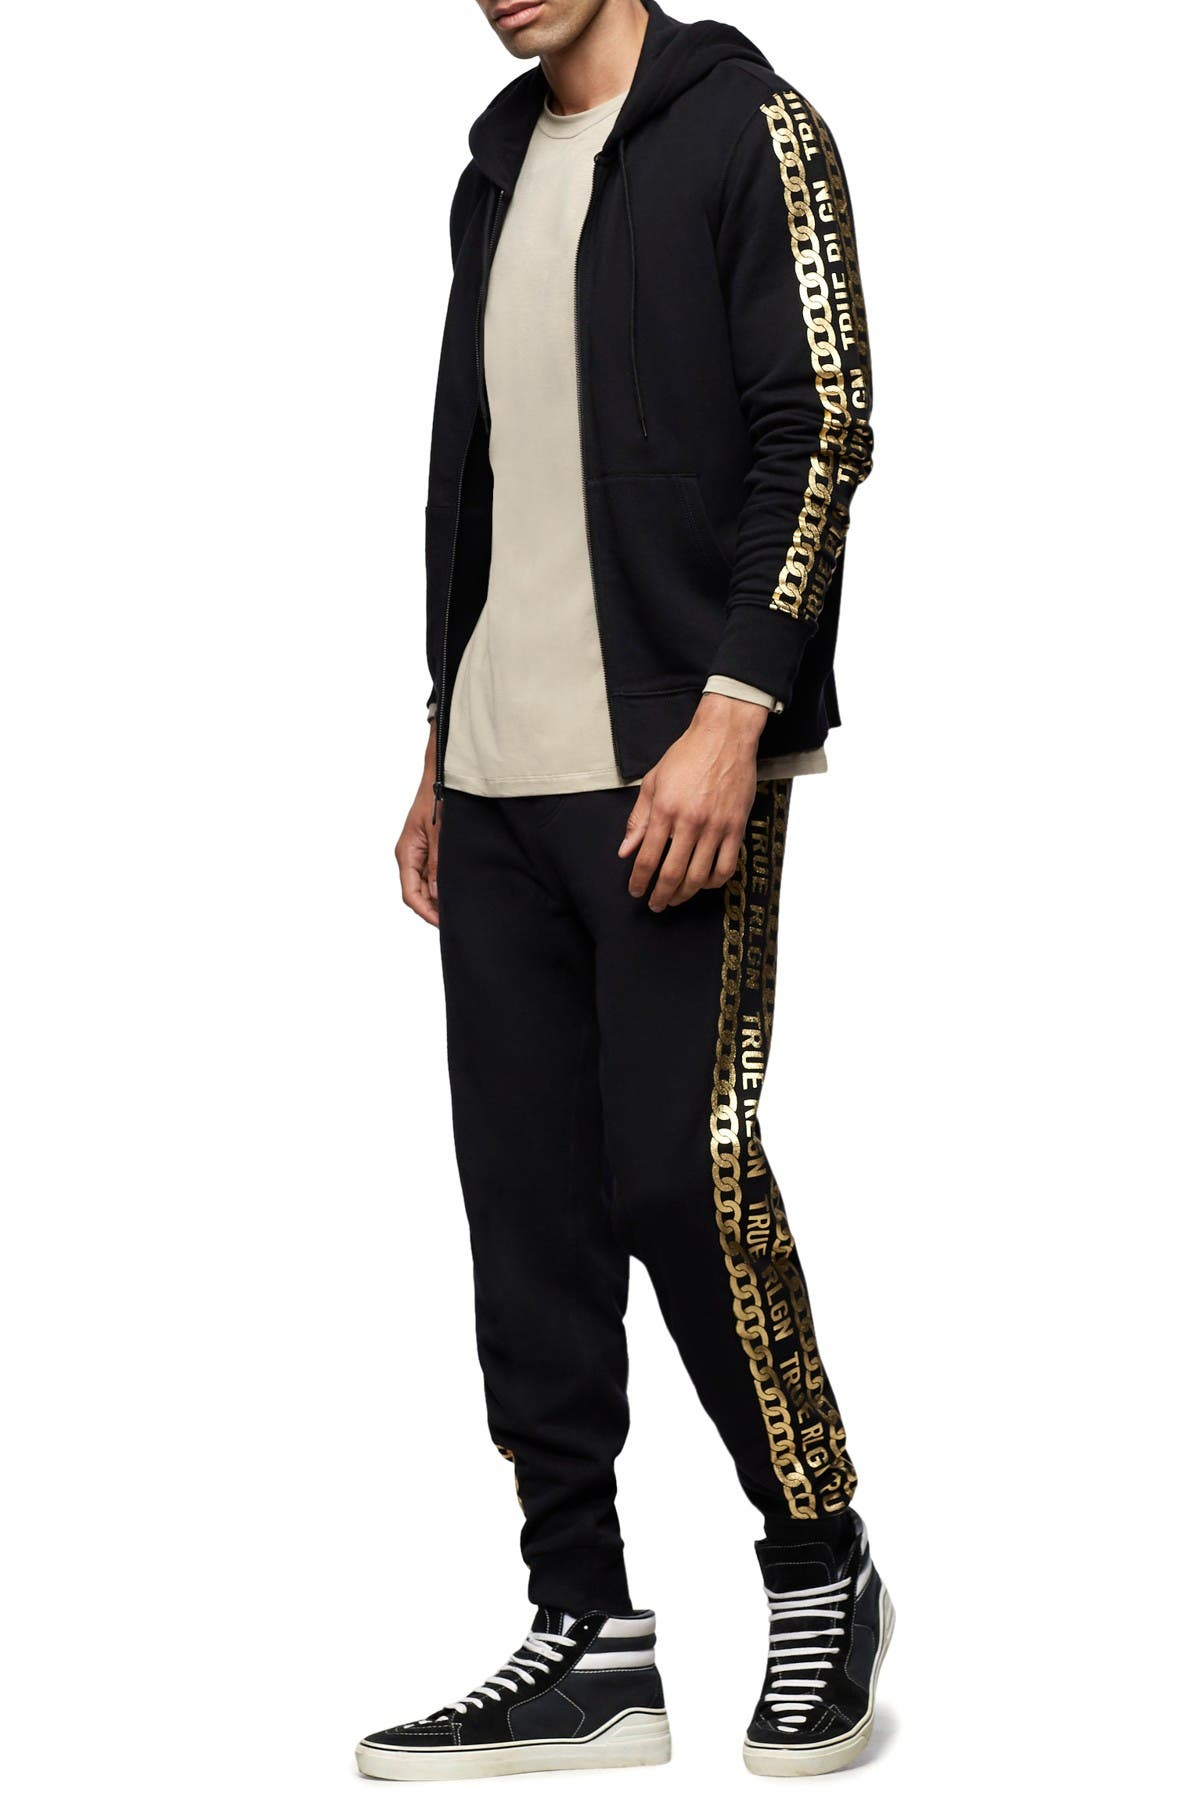 Image of True Religion Side Graphic Joggers